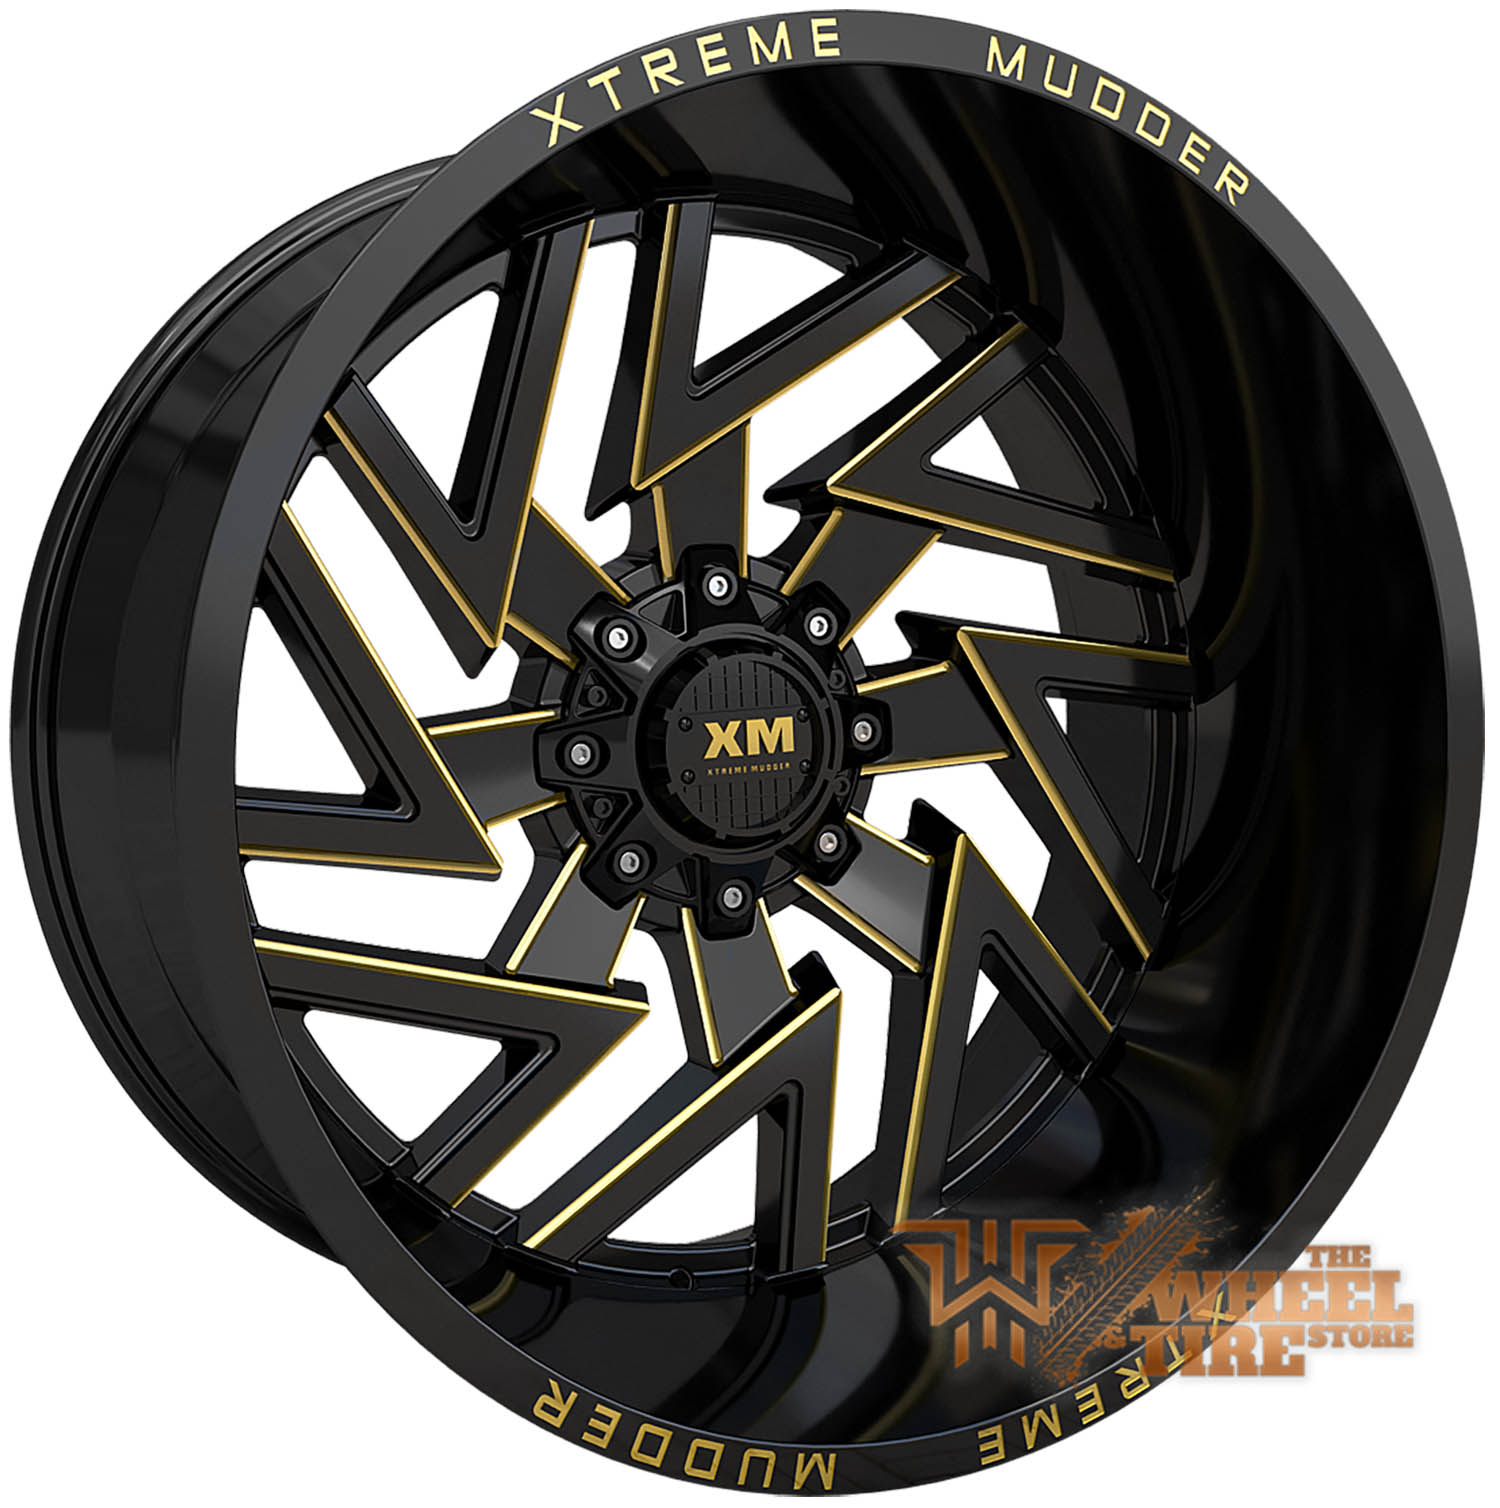 XTREME MUDDER XM-340 Wheel in Gloss Black Yellow Milled